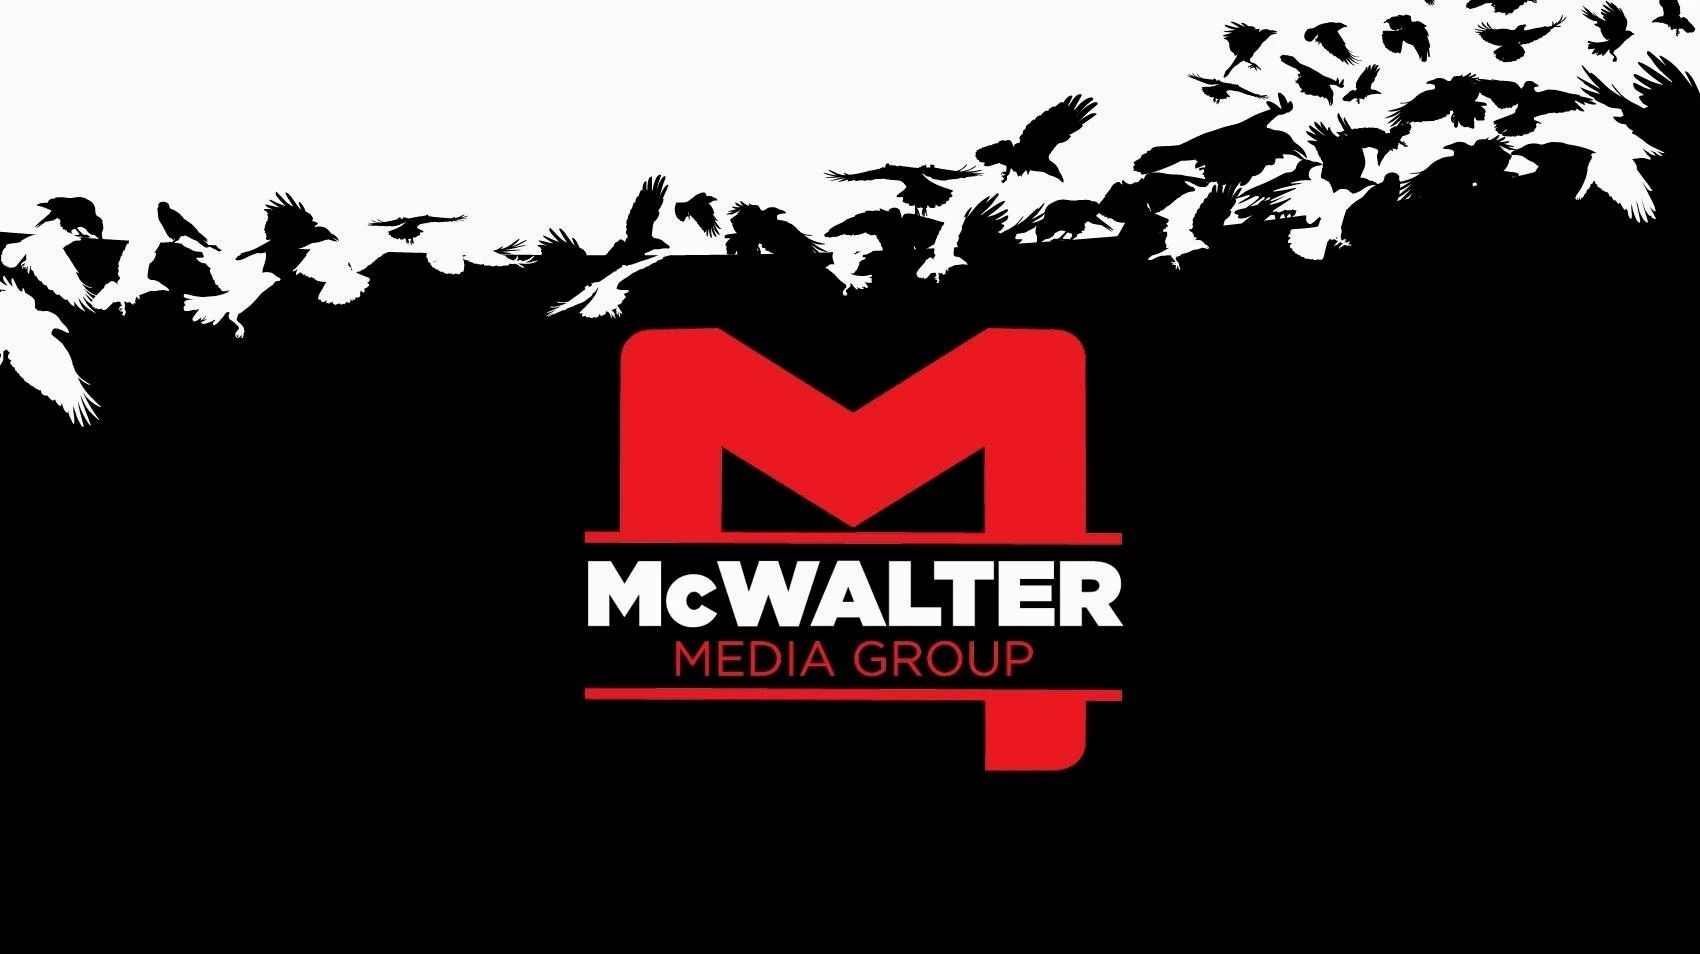 McWalter Media Group logo